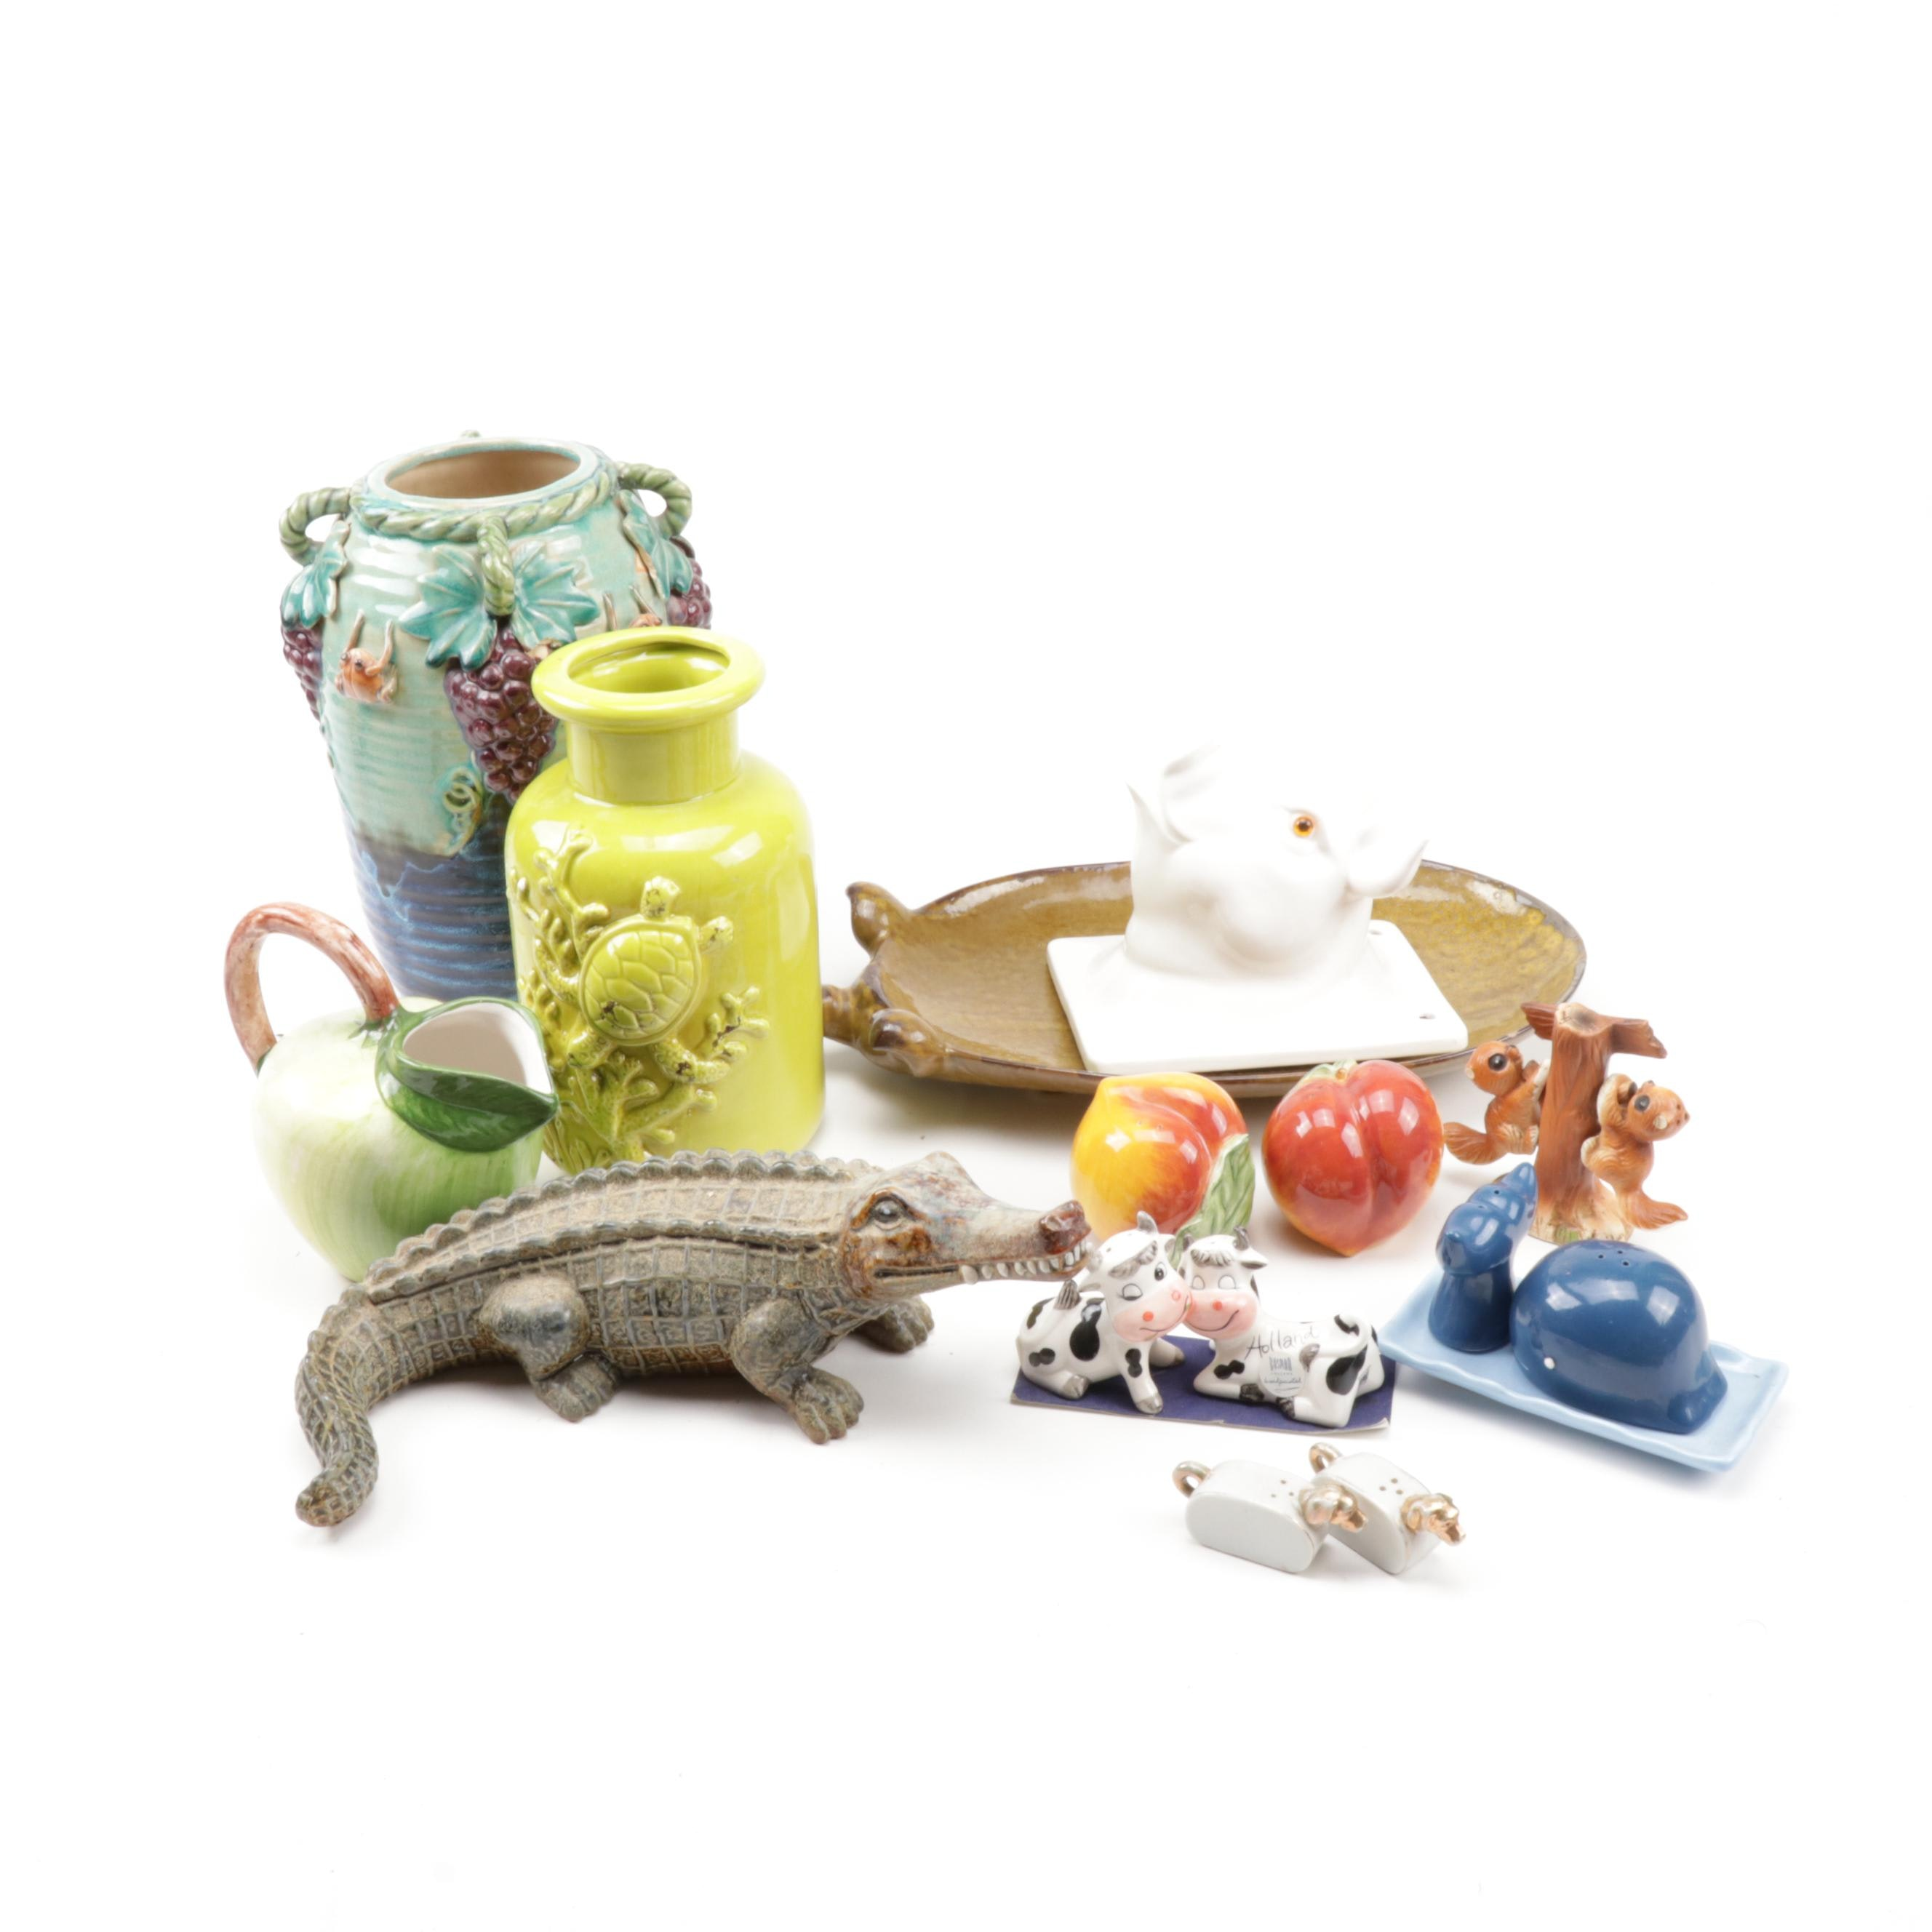 Figural Ceramic Vases, Salt and Pepper Shakers, and More,